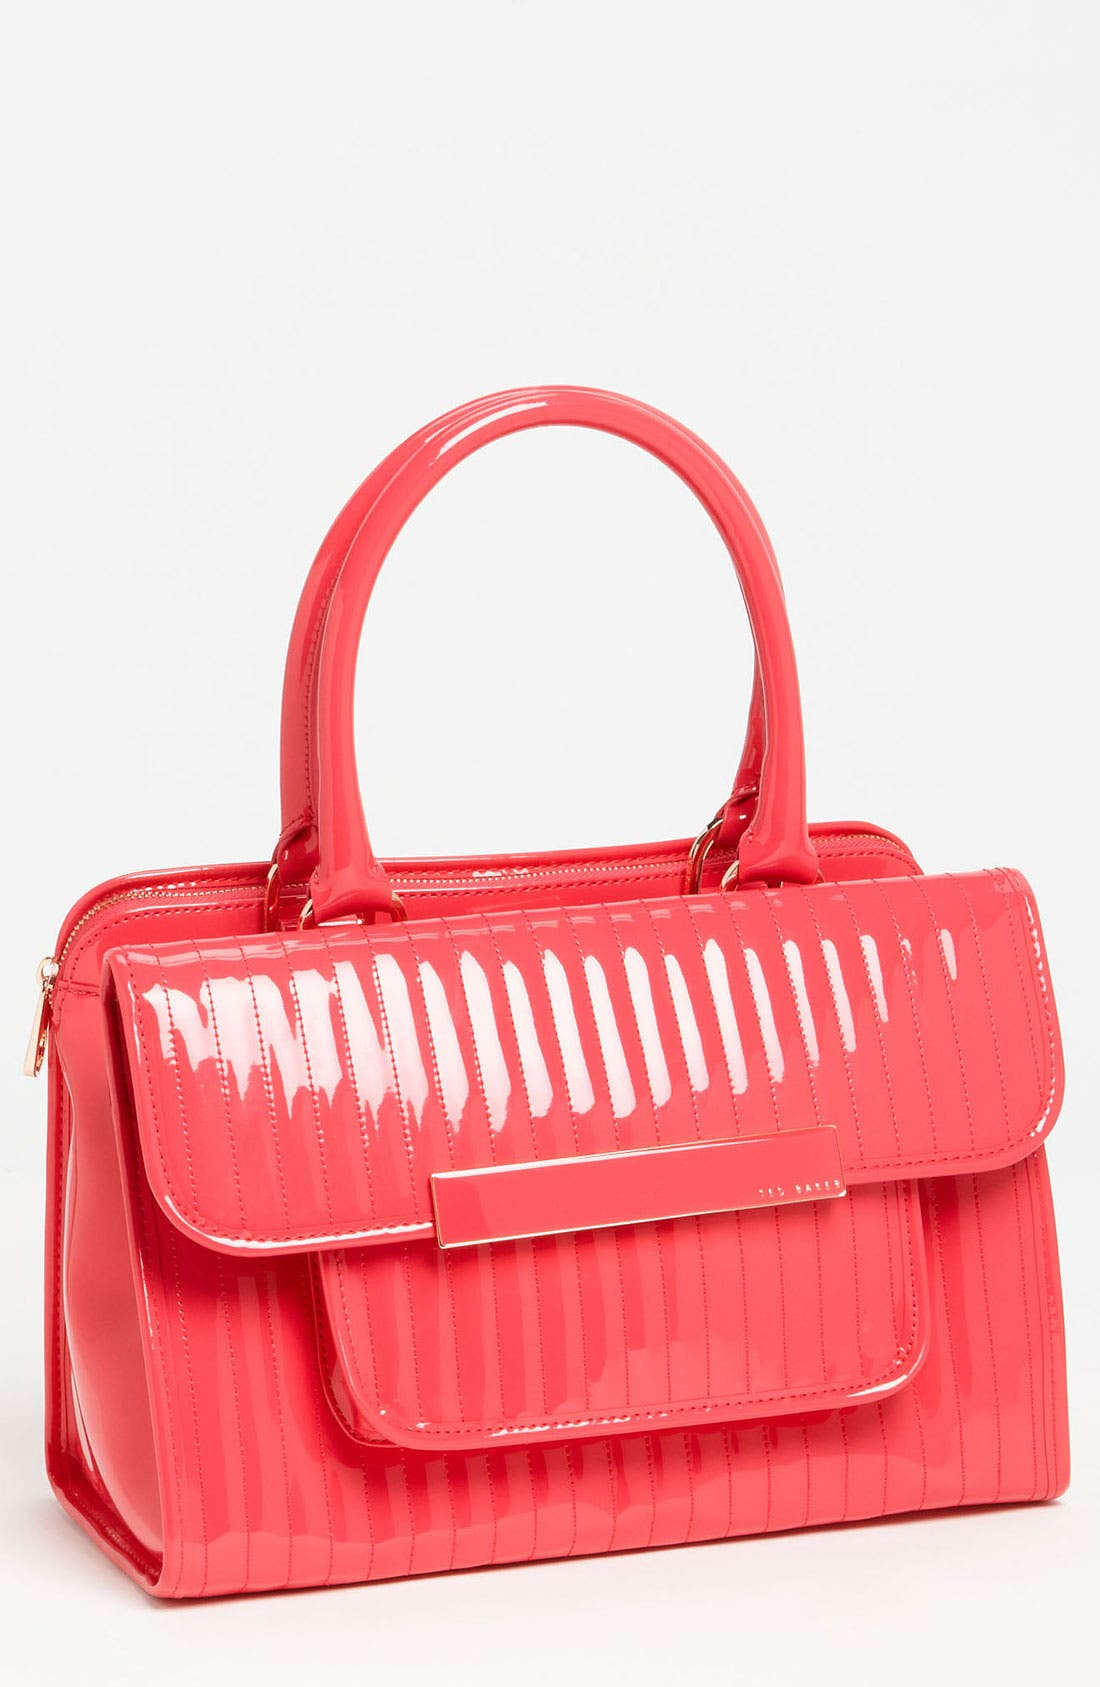 Alternate Image 1 Selected - Ted Baker London 'Mardun' Satchel